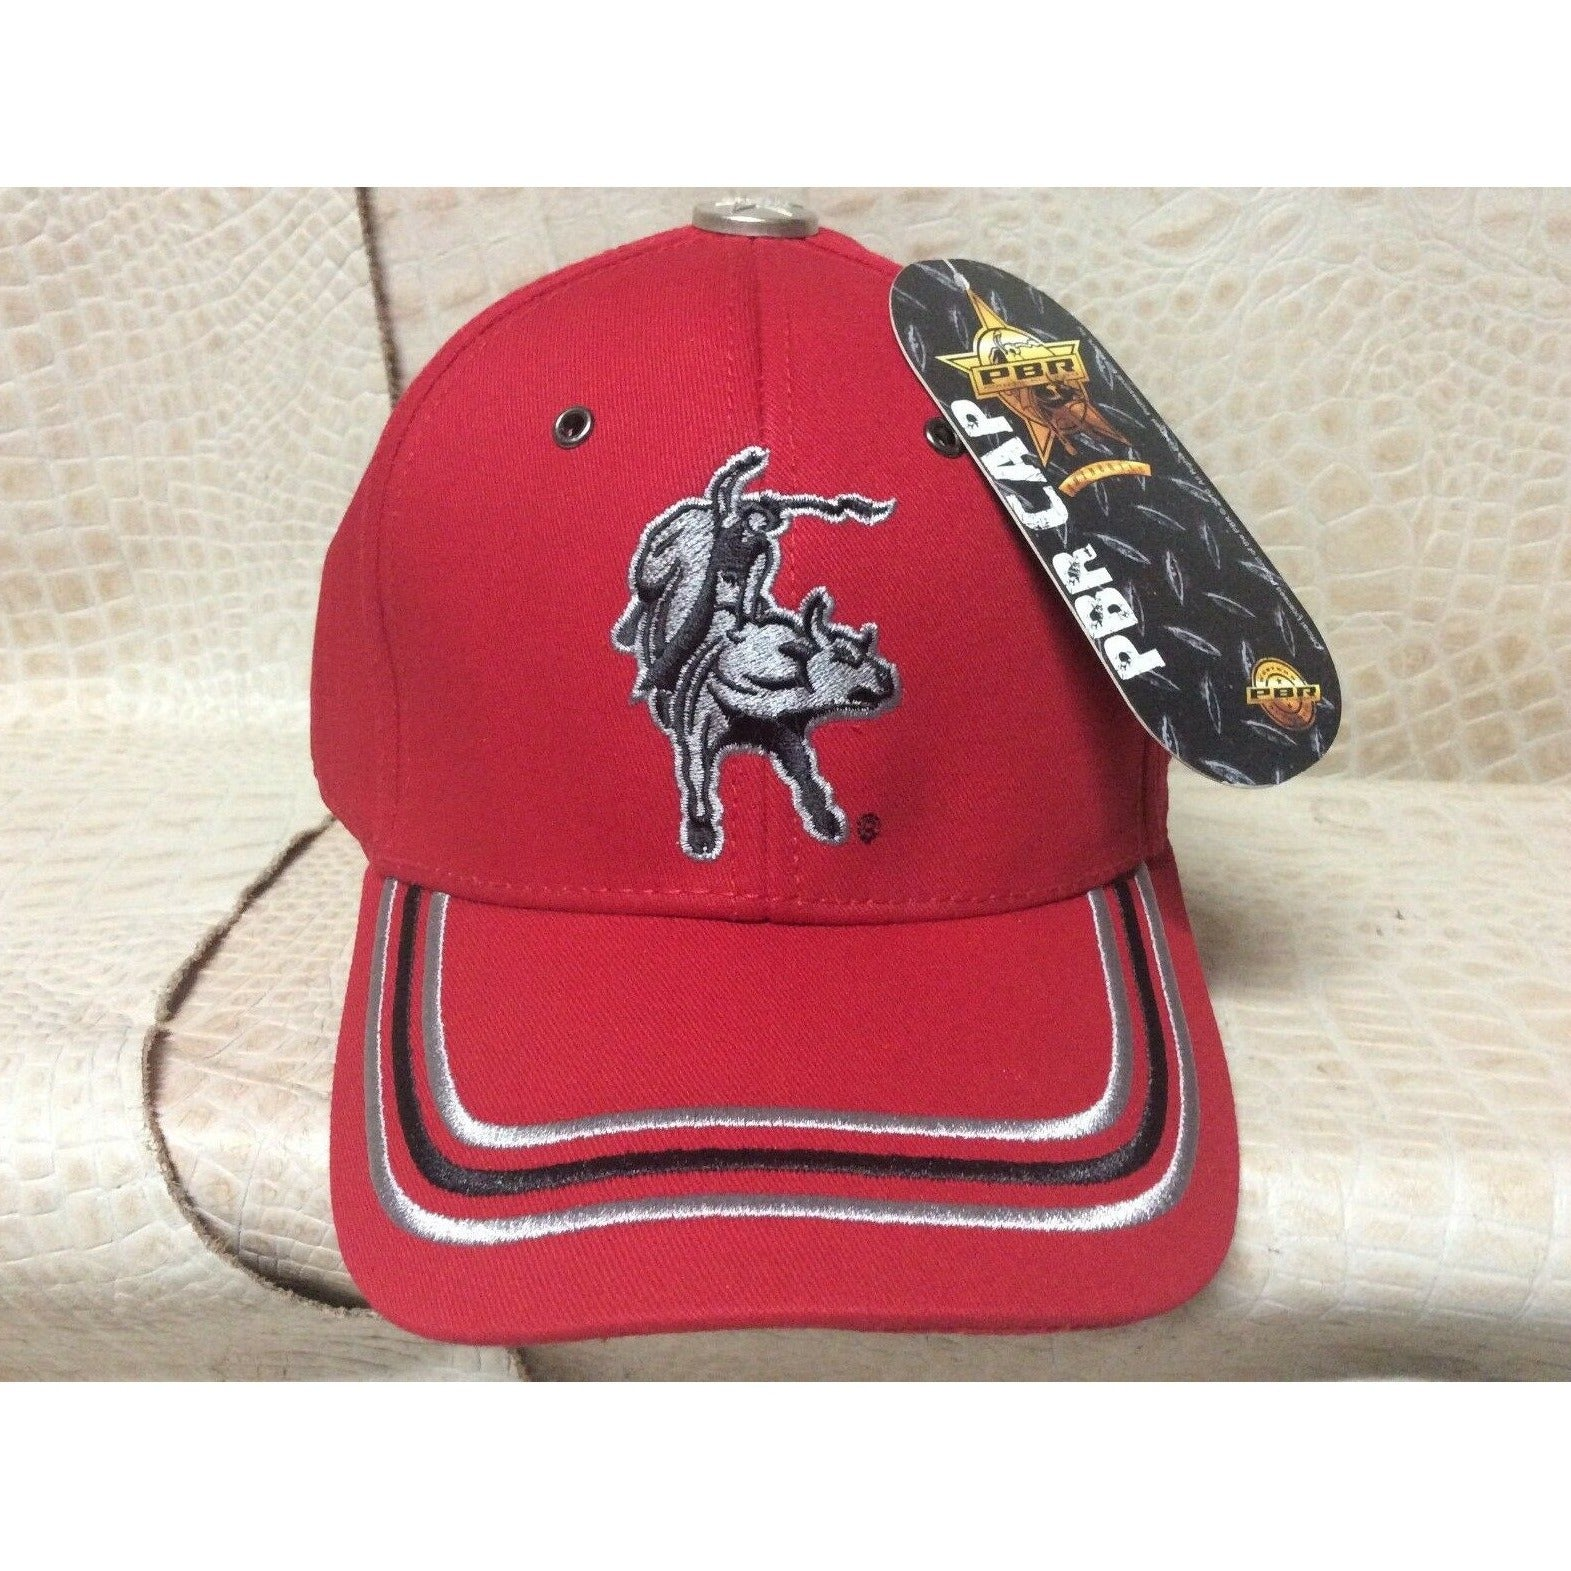 New Mens PBR Ball Cap Hat Rodeo Western Cowboy Red - CWesternwear